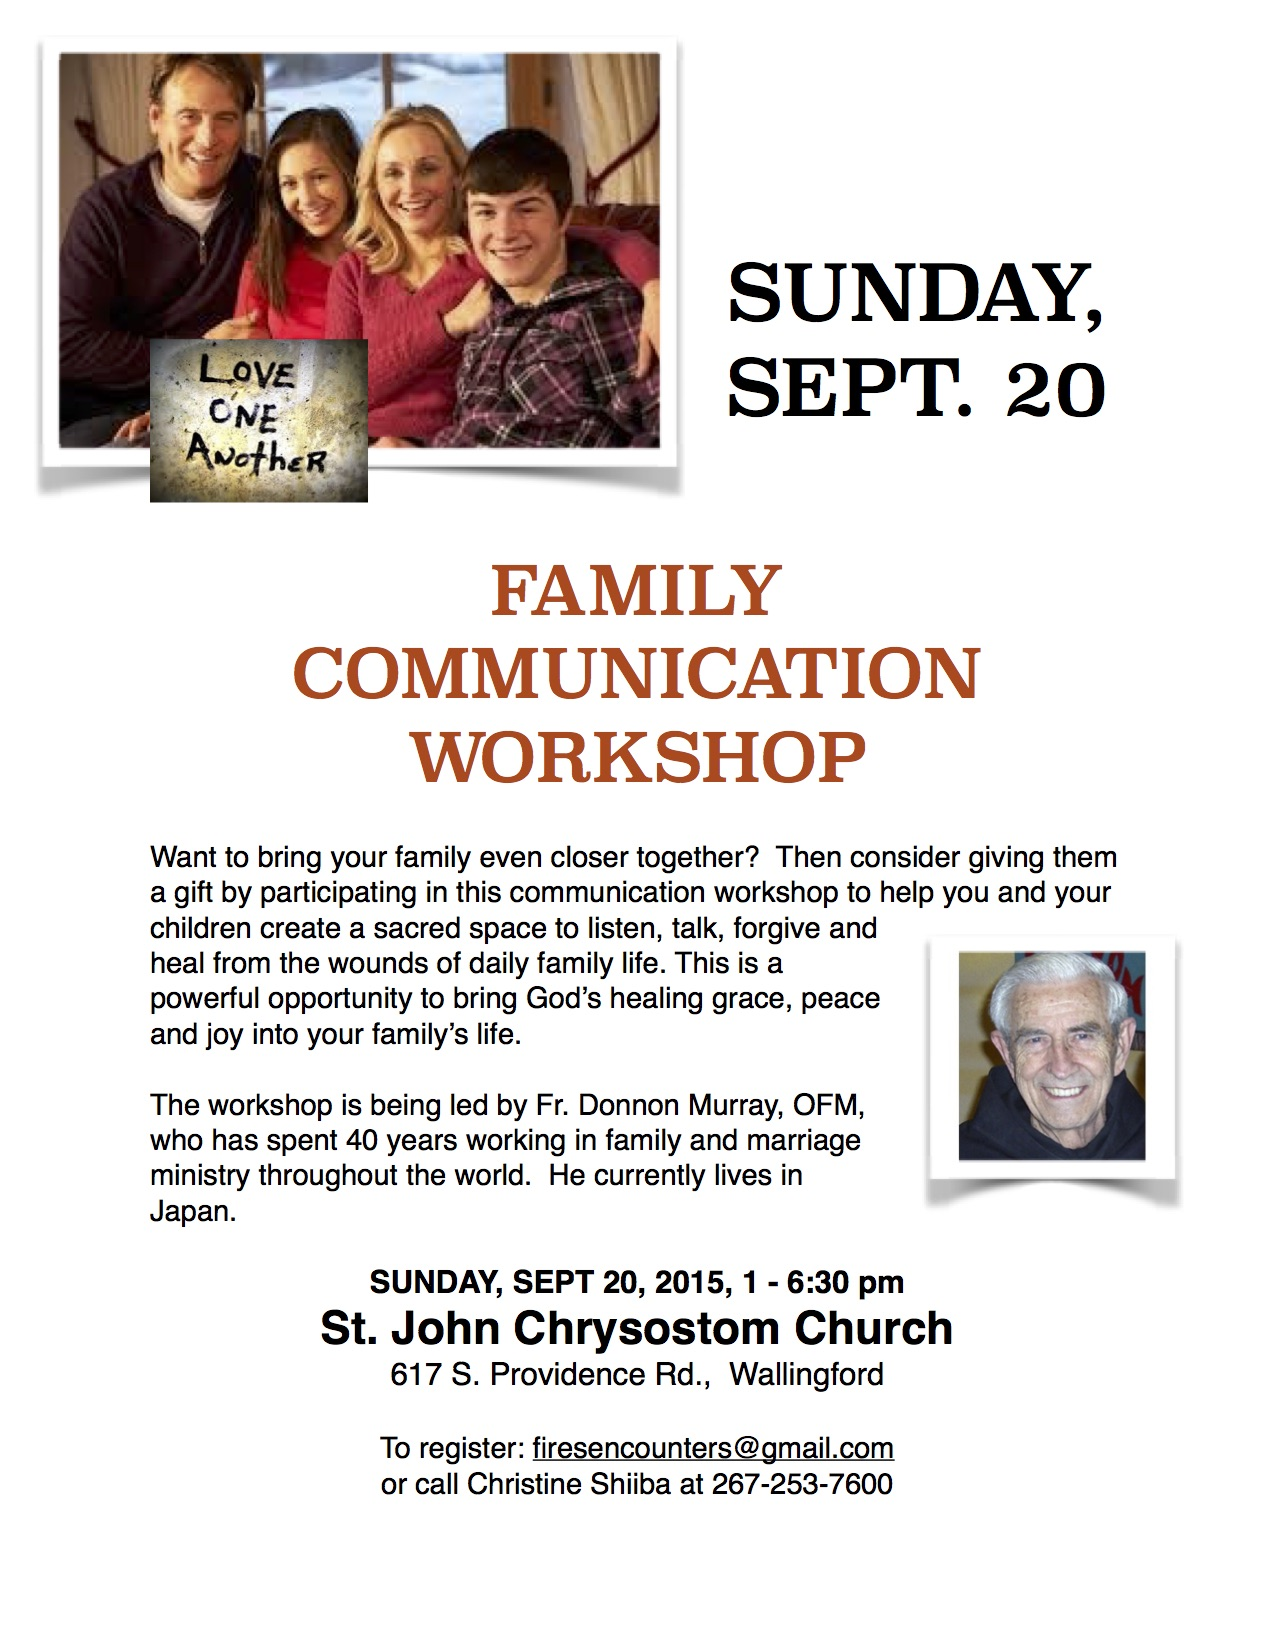 Fr. Donnon Workshop at World Meeting of Families, Sept 2015